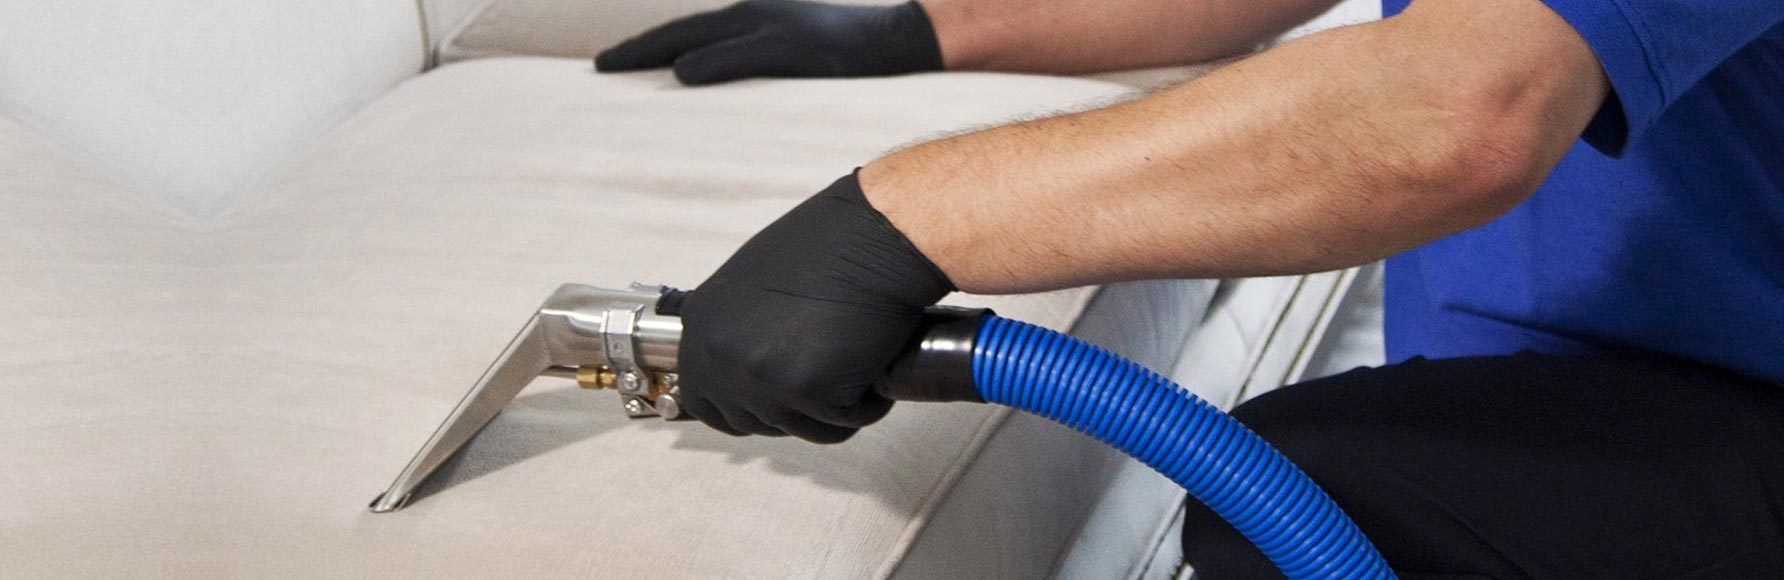 upholstery cleaning in Sonoma county